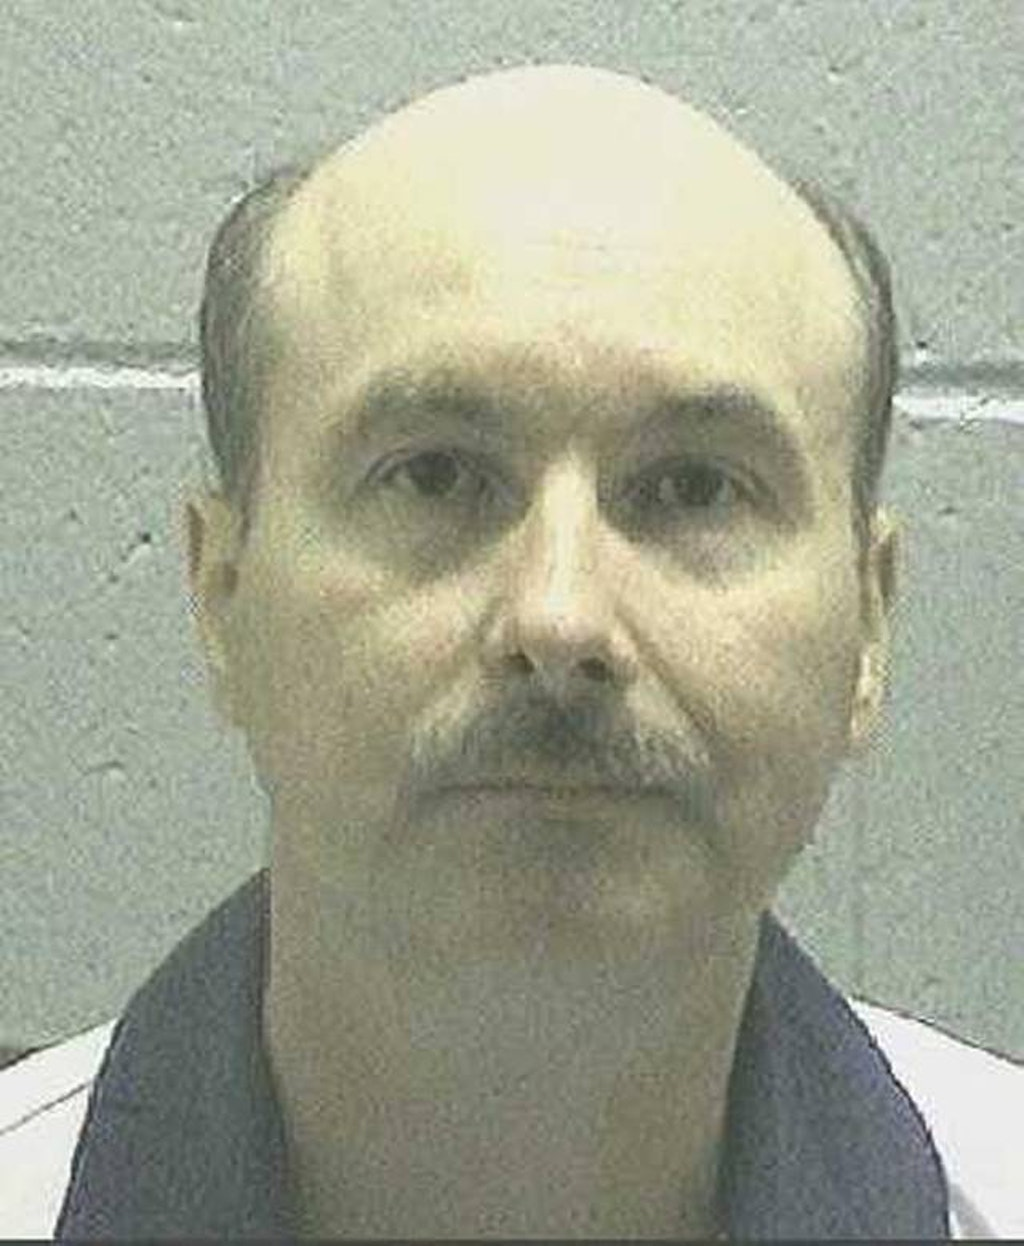 Georgia Set to Execute Man Despite Serious Juror Misconduct that No Court Has Ever Reviewed